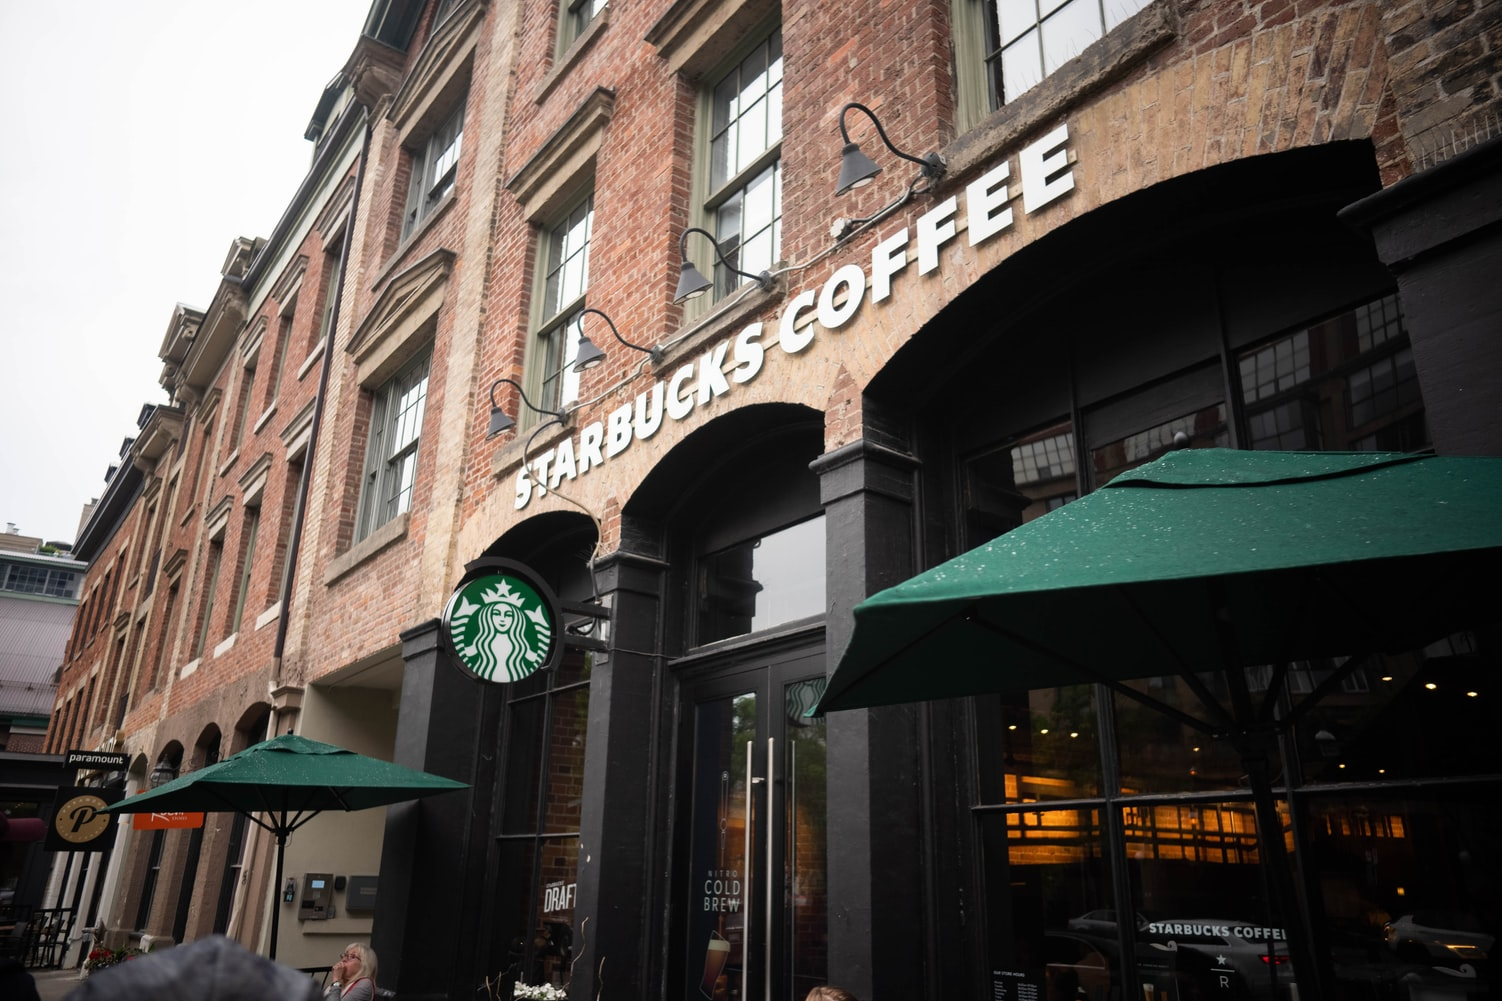 Bold Bitcoin Prediction #2: Amazon and Starbucks Lead the Way in Becoming Two of the Largest Retailers in the World Now Accepting Cryptocurrency